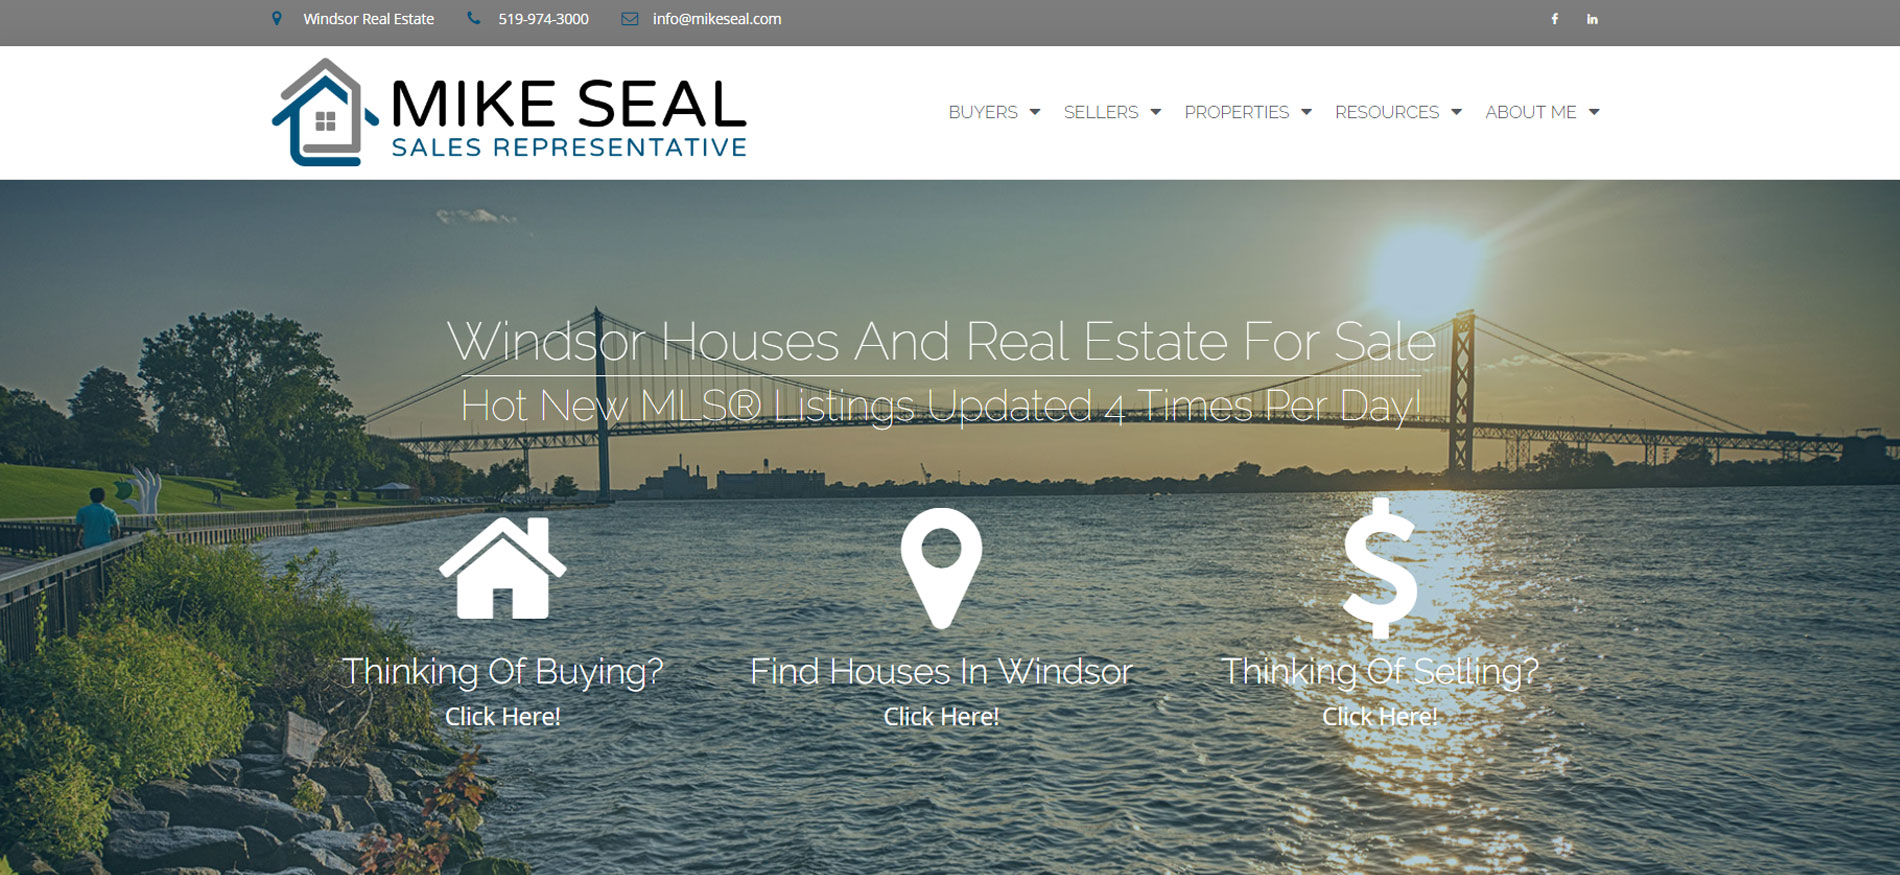 Mike Seal Windsor Real Estate